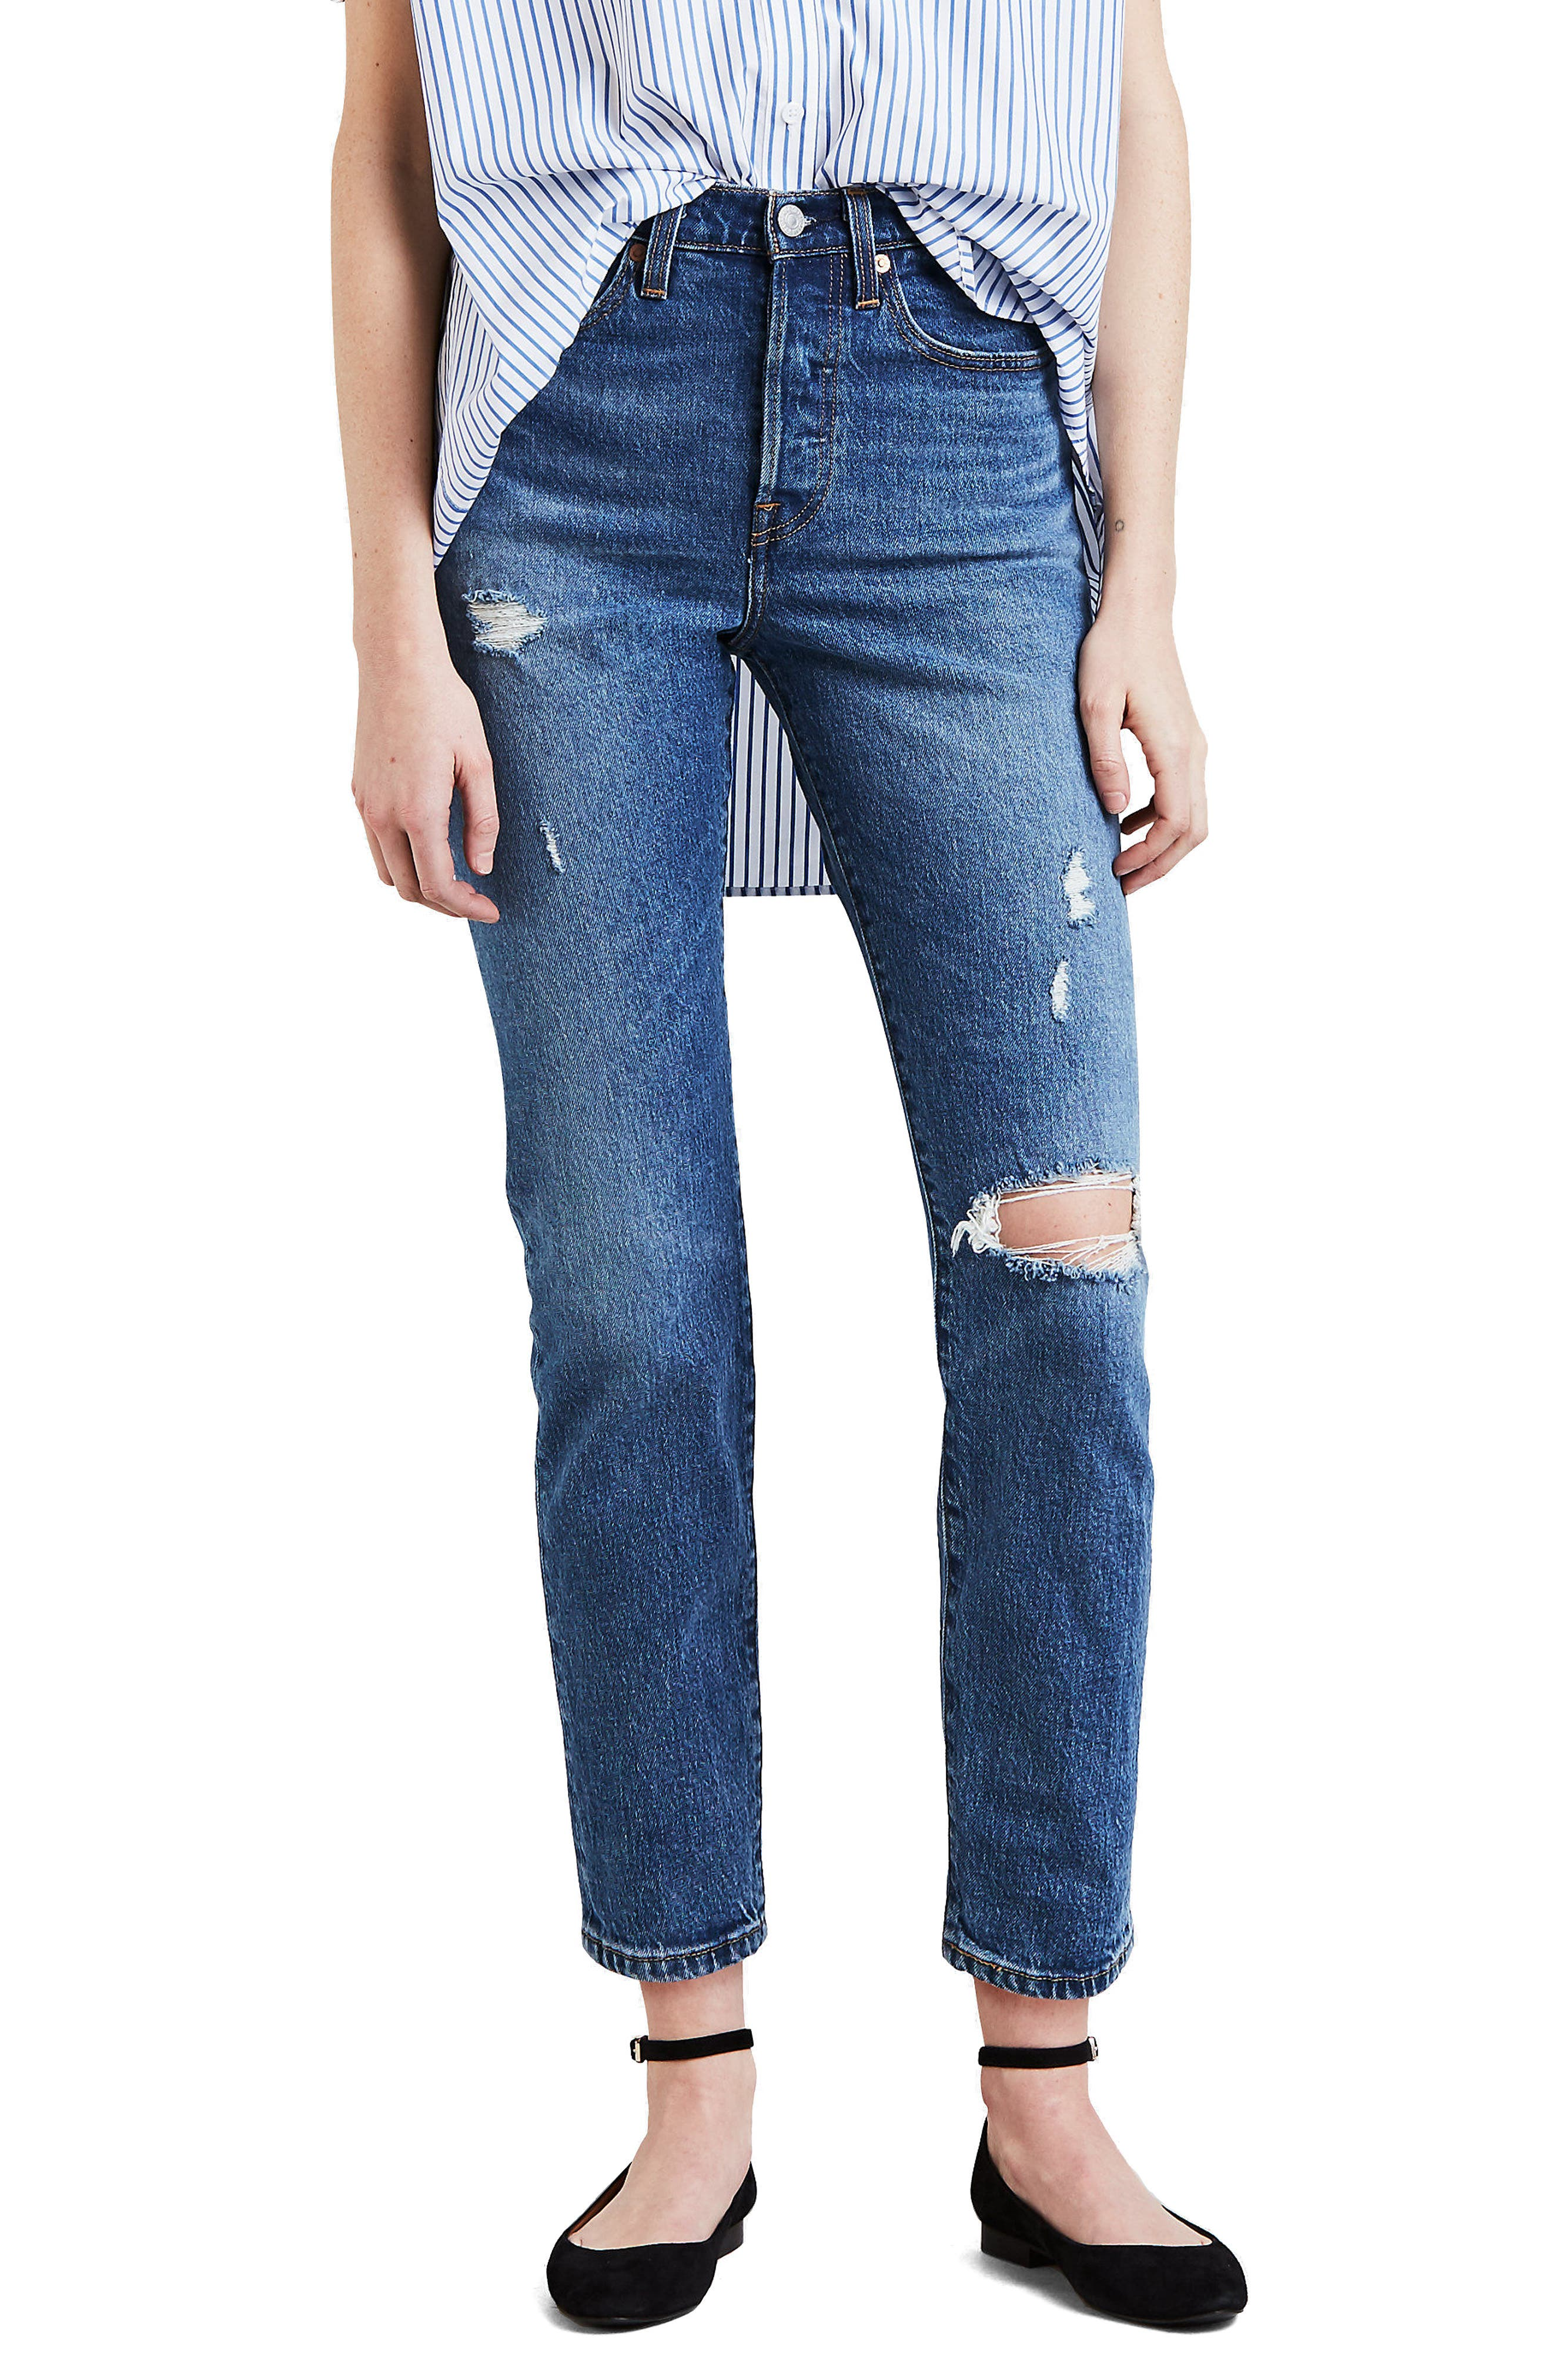 Wedgie Icon Fit Ripped High Waist Ankle Jeans,                             Main thumbnail 1, color,                             HIGHER LOVE